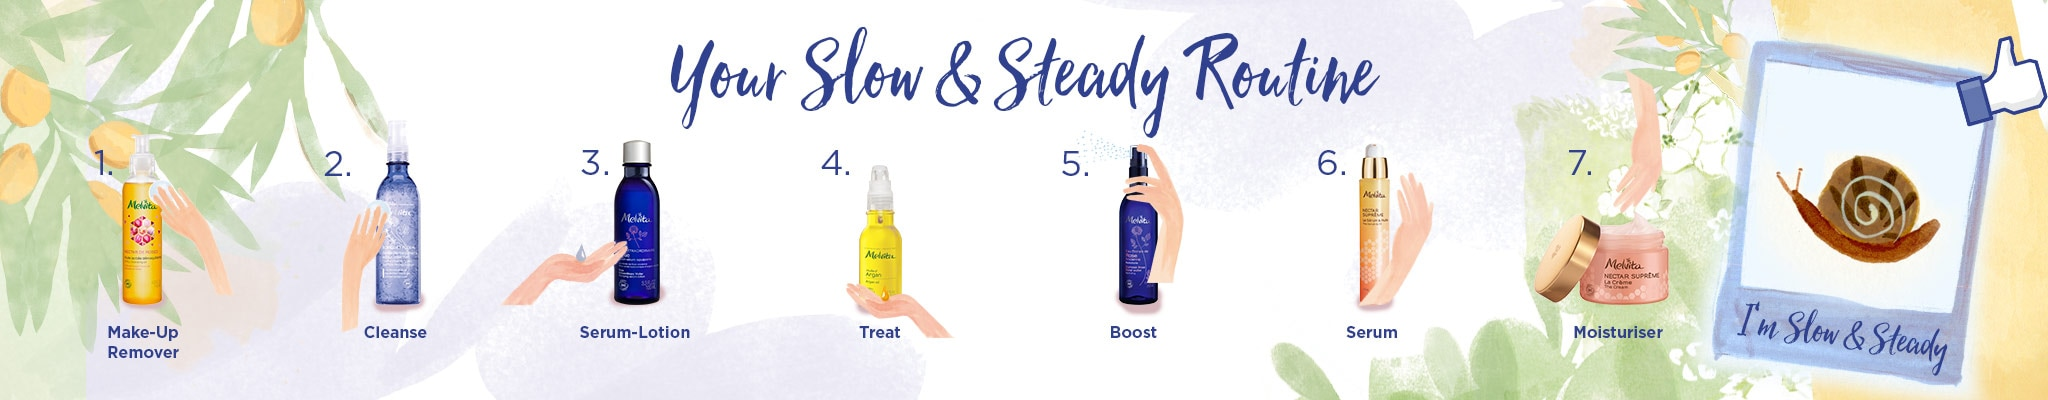 Discover Your Slow and Steady Skincare Routine